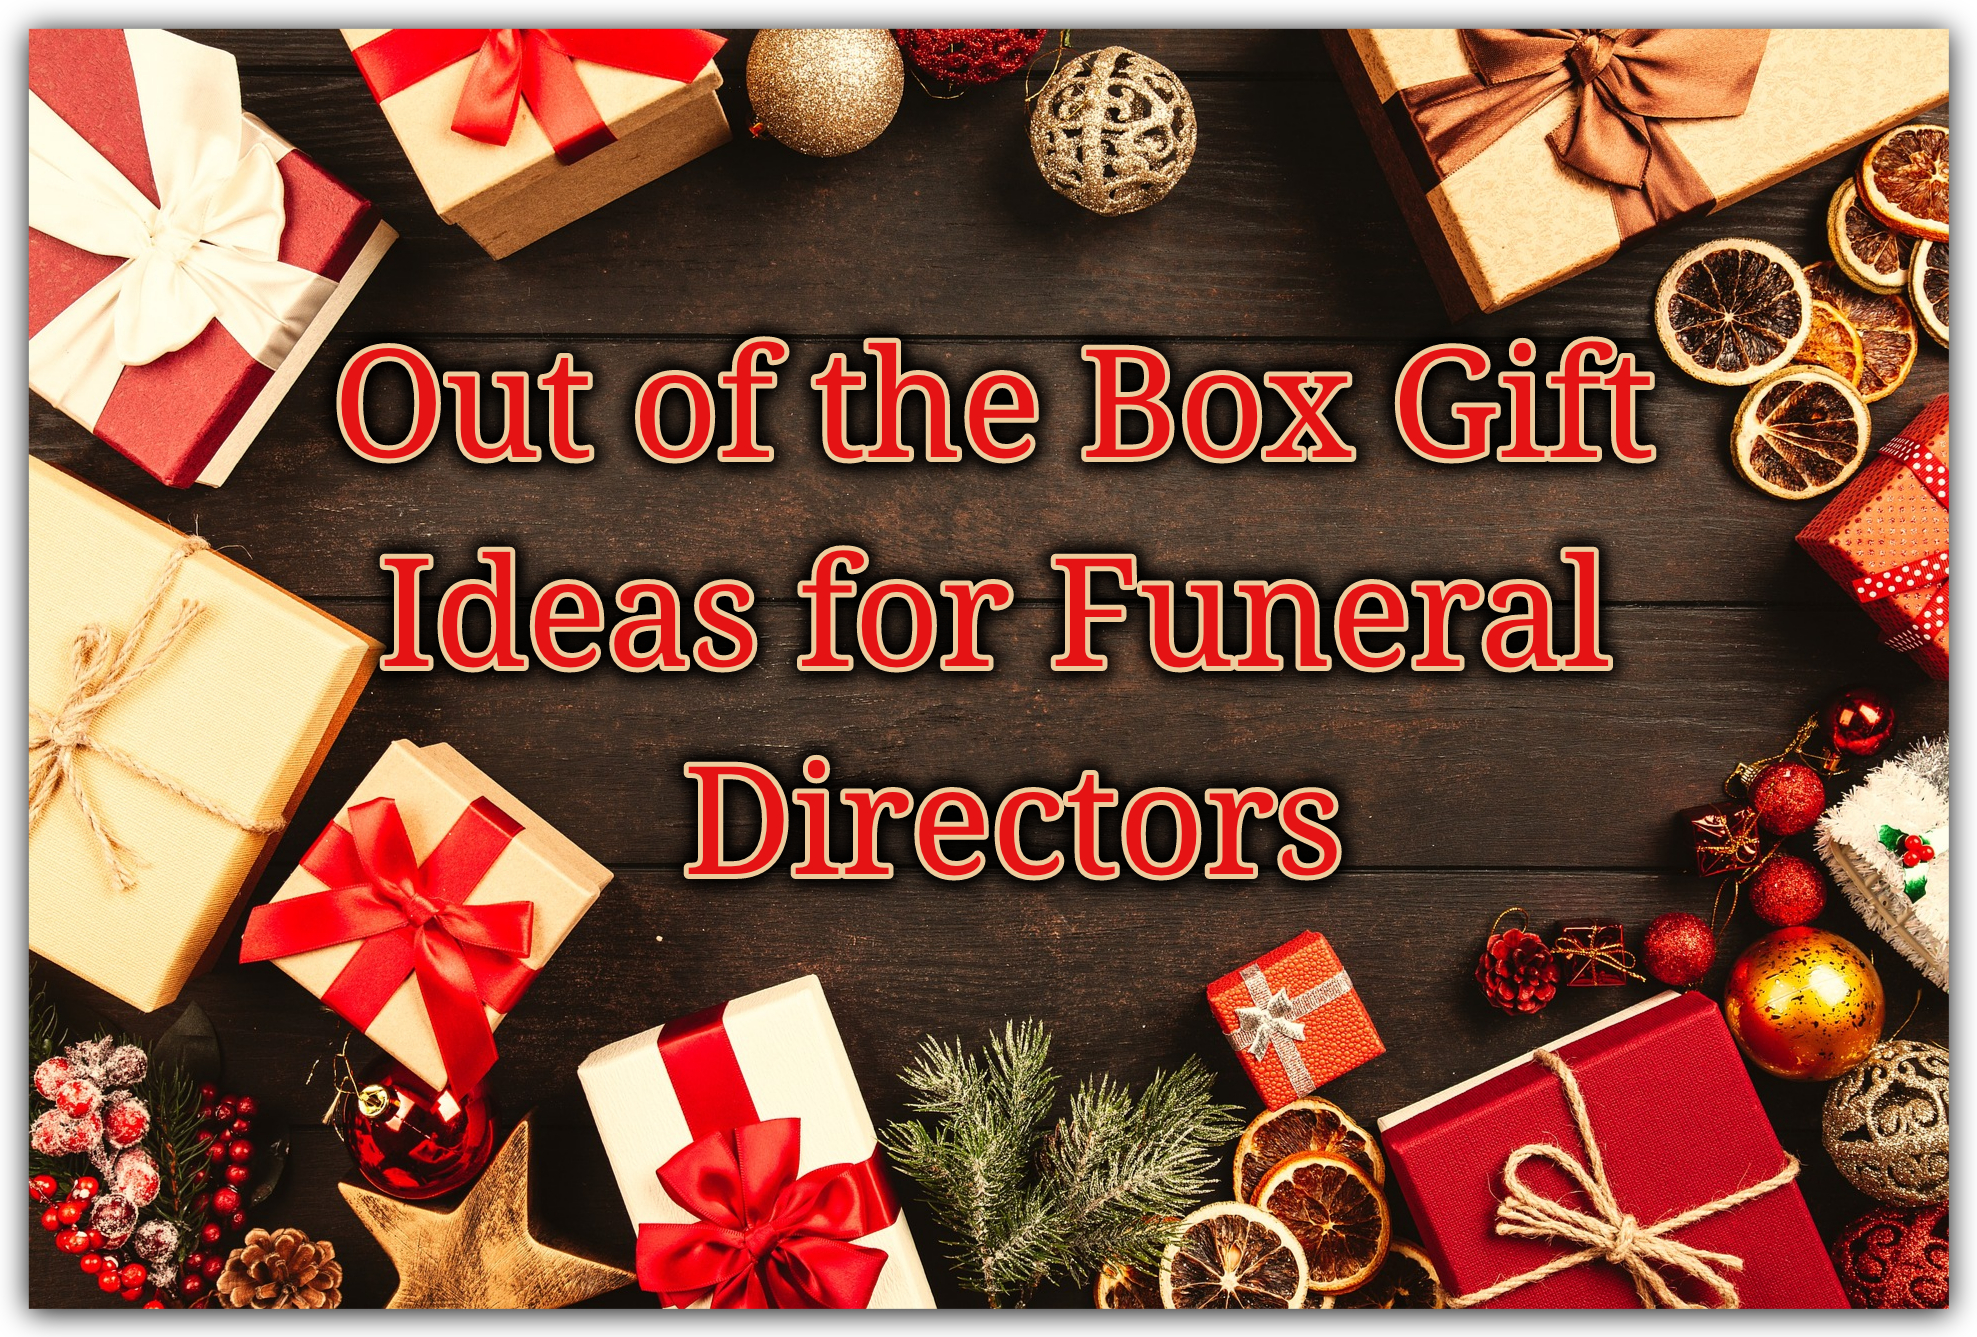 932ed65d20 25 Out of the Box Gift Ideas For Funeral Directors